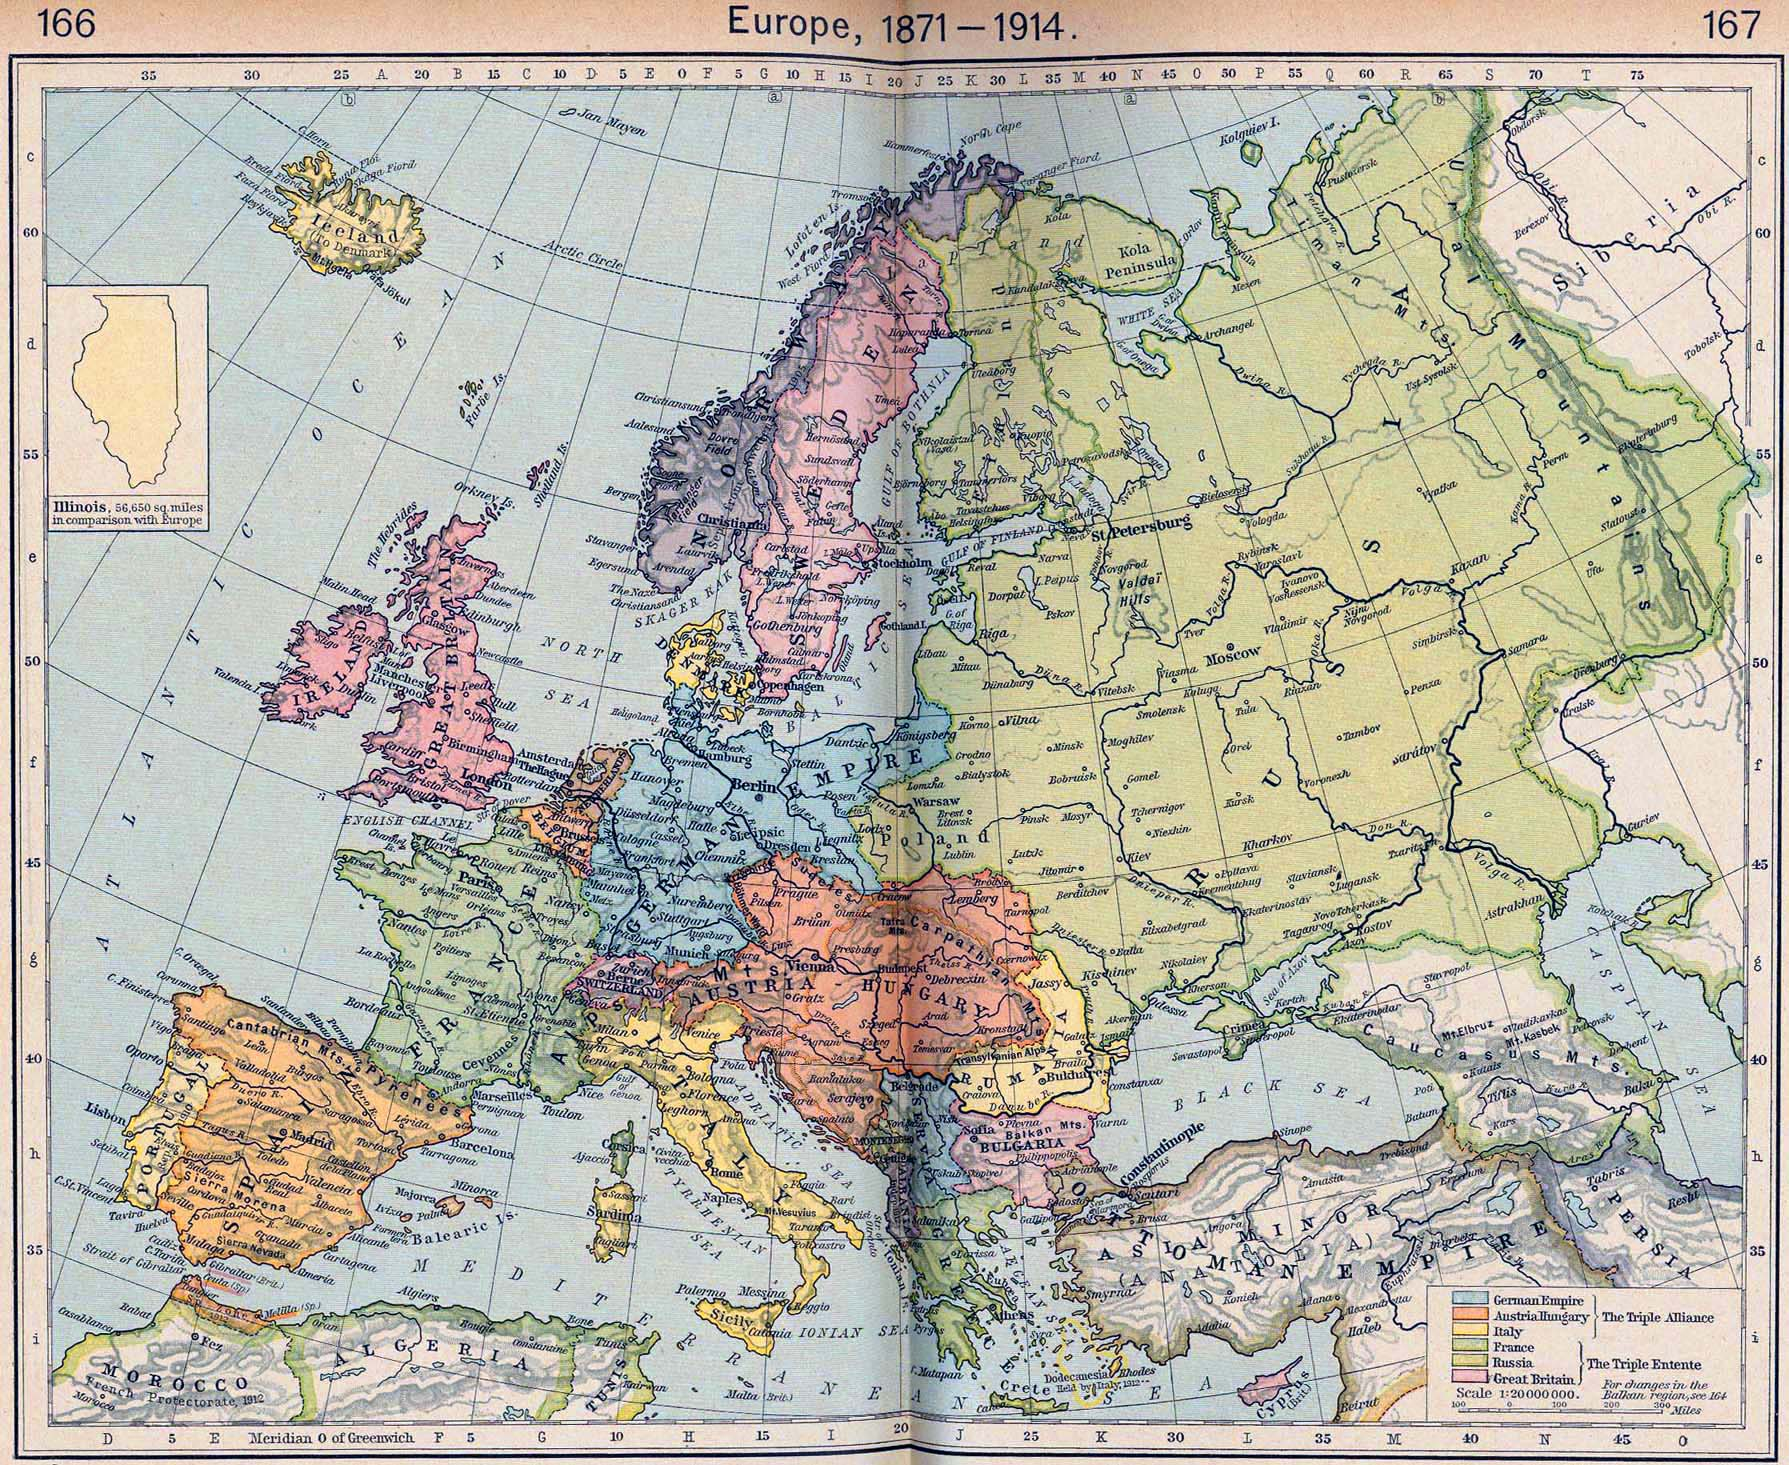 karta evrope 1914 Map of Europe 1871 1914 karta evrope 1914